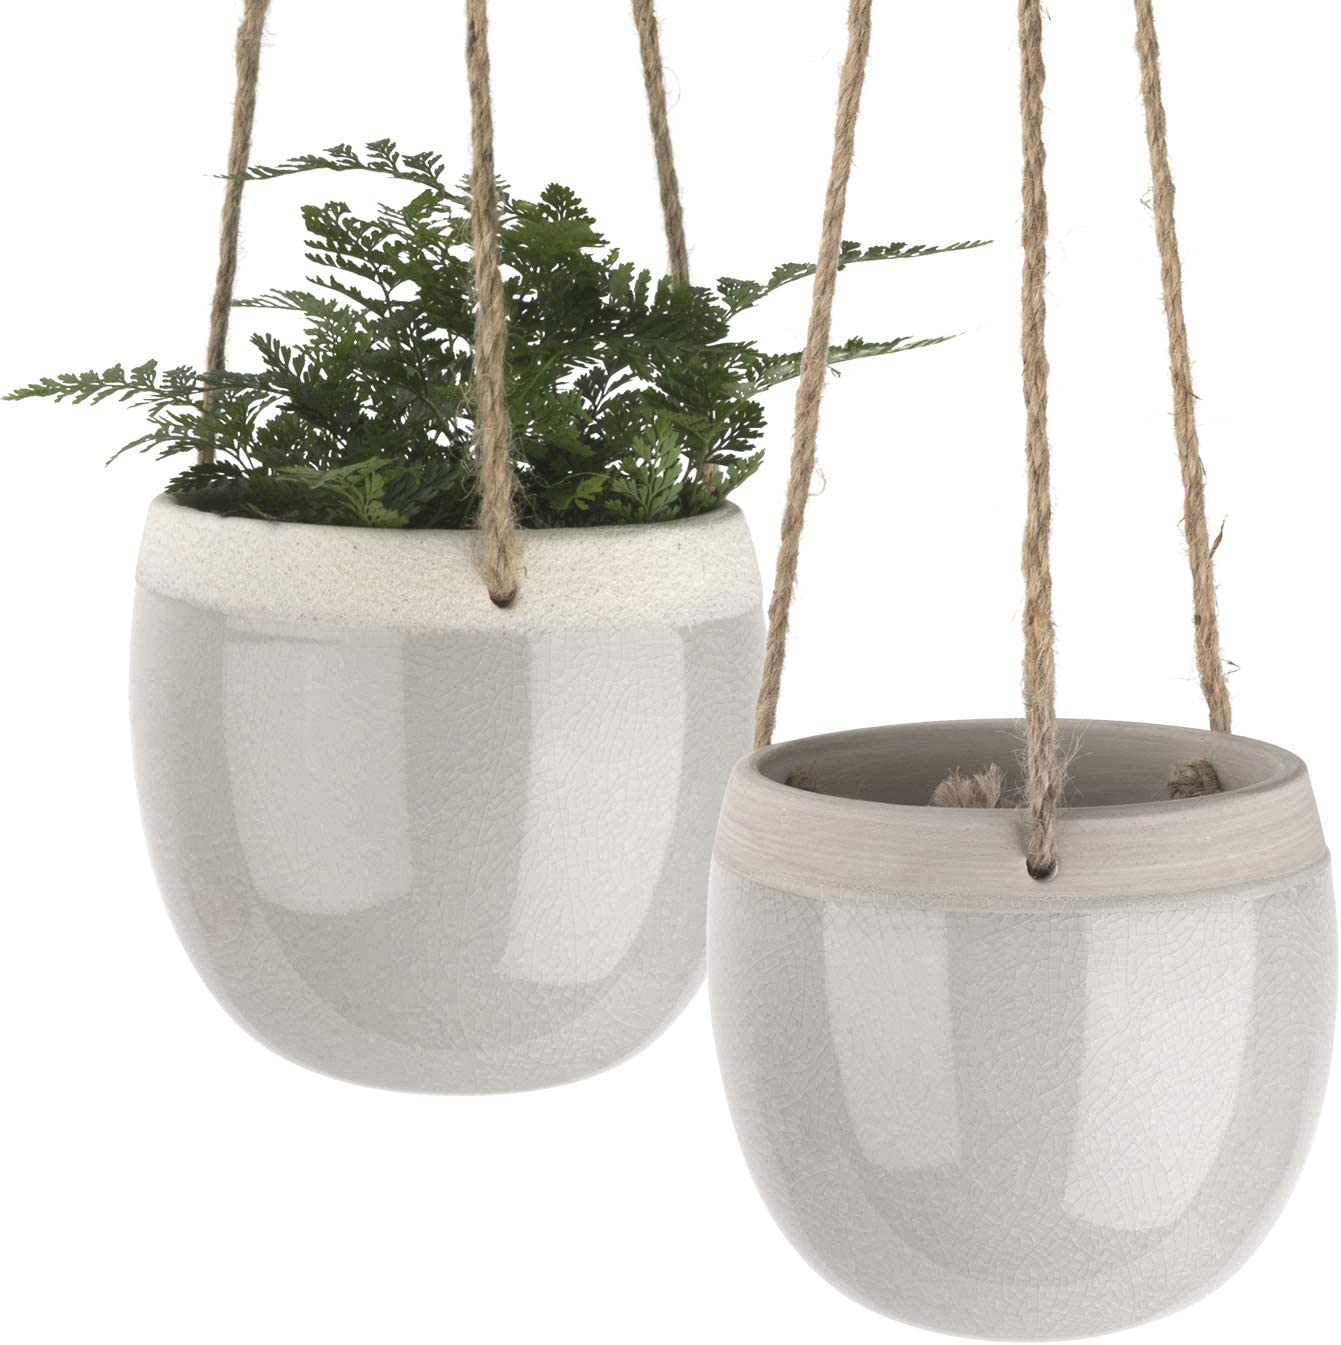 Ceramic Hanging Planters Indoors - 5.5 Inch Hanging Plant Pots, Modern Plant Holder with Jute Rope for Succulents Cactus Herbs Small Plants, Home Decor Gift, Set of 2 (Light Grey)